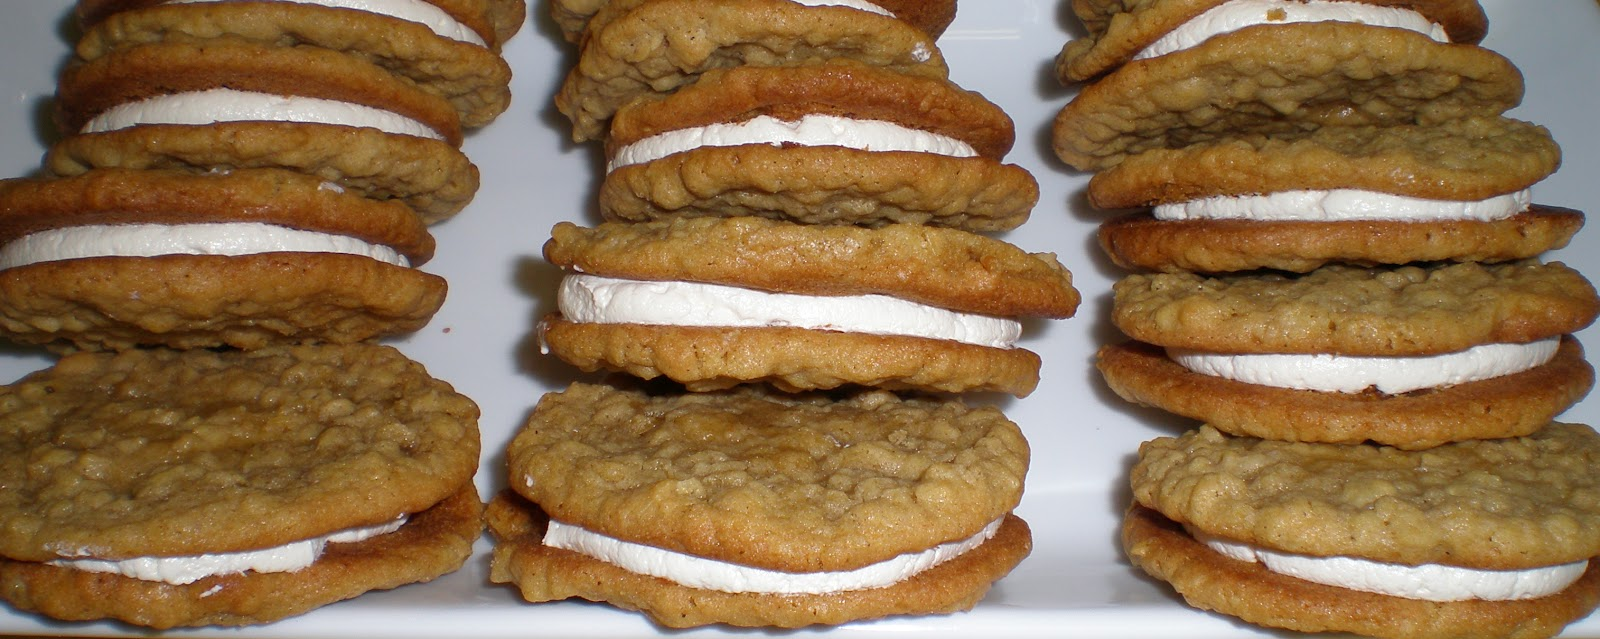 ... little deddie oatmeal cream pies i also remember really loving them i